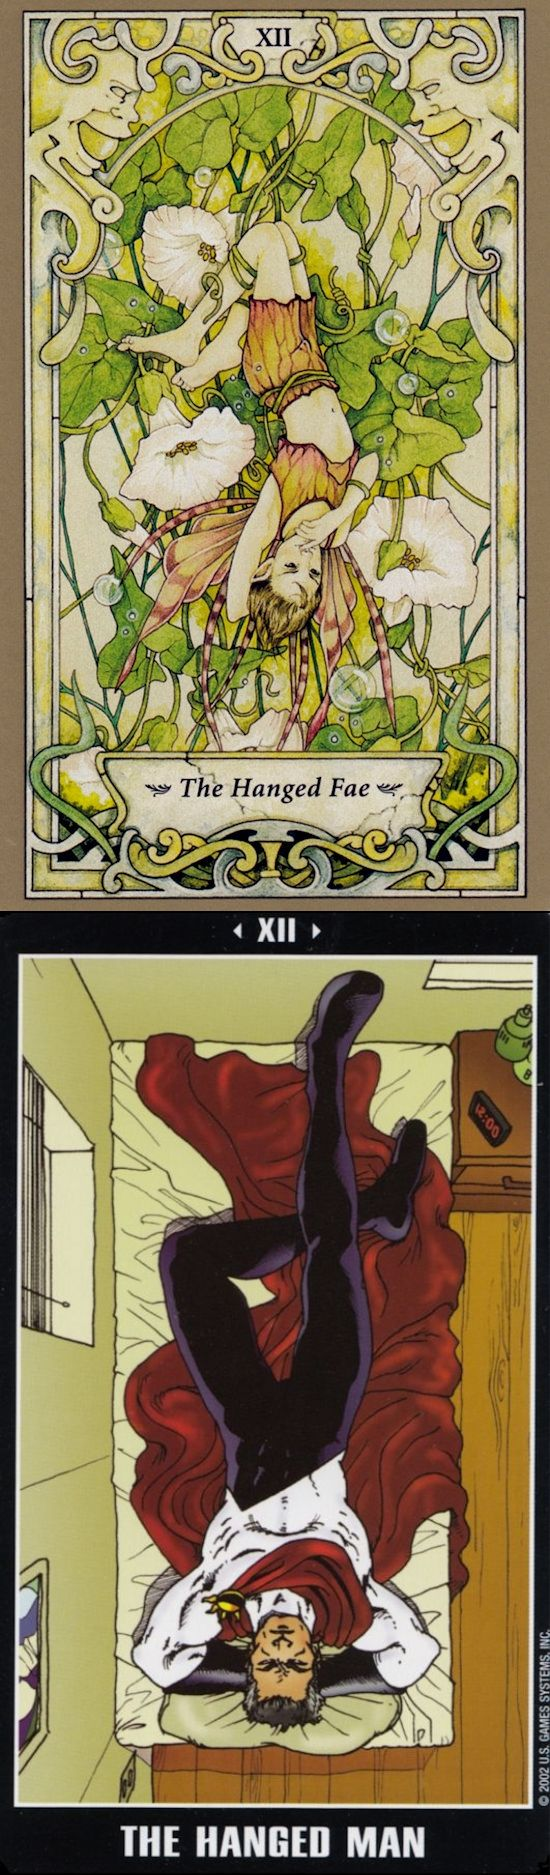 THE HANGED MAN: release of control and waiting to no avail (reverse). Mystic Faerie Tarot deck and Adventure Tarot deck: tarot prediction, yes no love tarot vs tarot free tarot. New guessing booth and playing cards design.